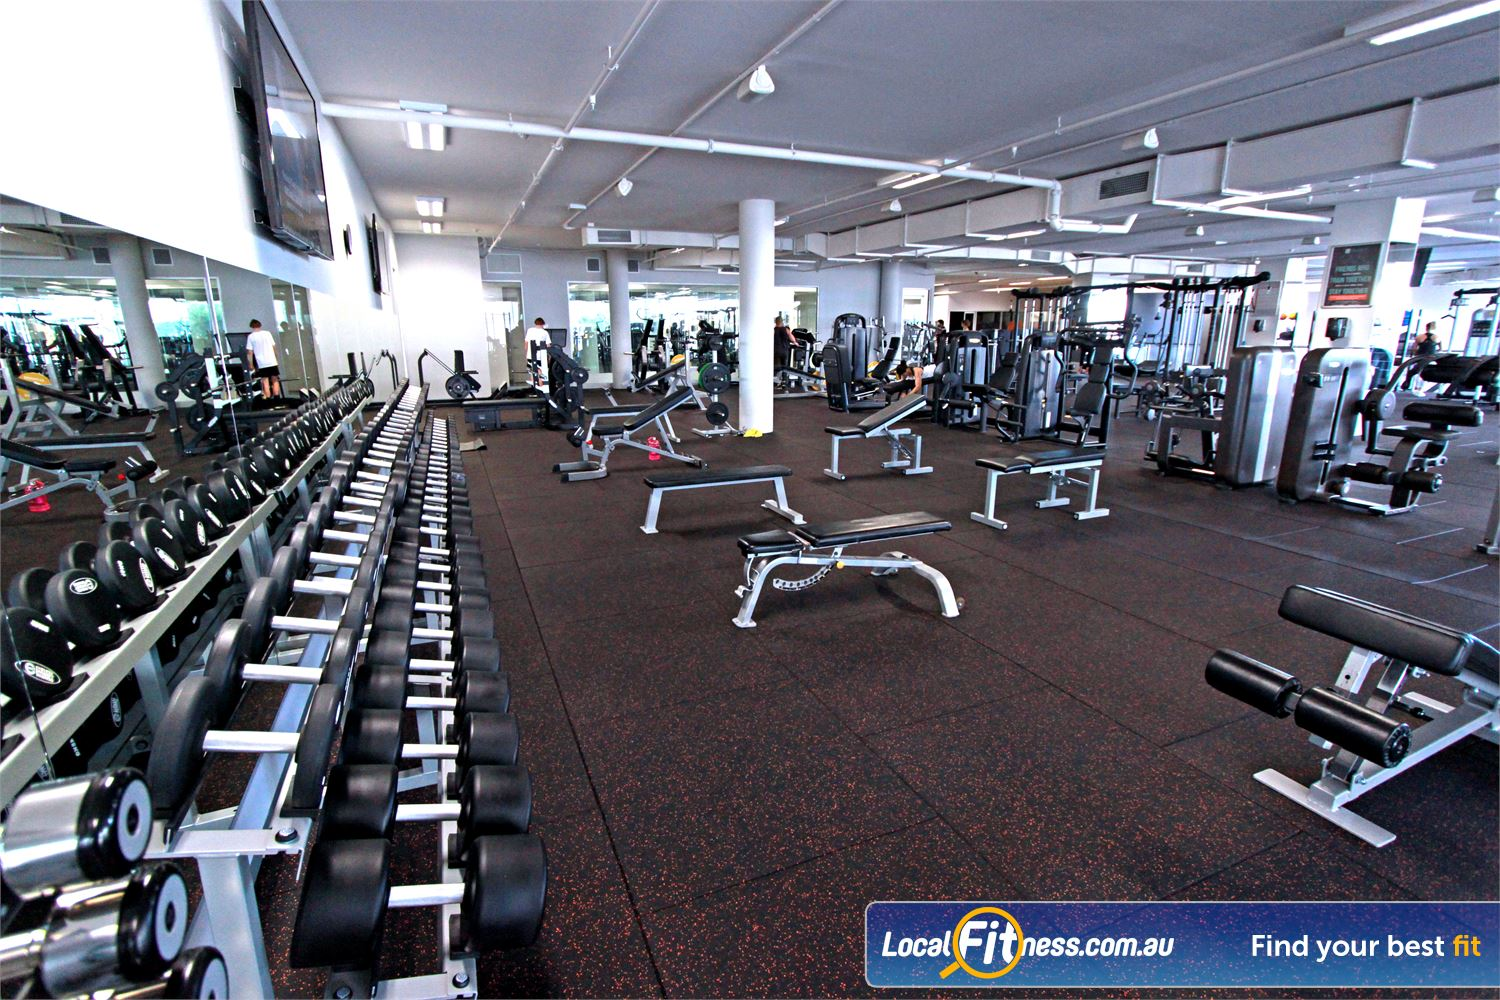 South Pacific Health Clubs Near Mordialloc Our 24 hour Mentone gym includes a fully equipped free-weights area.